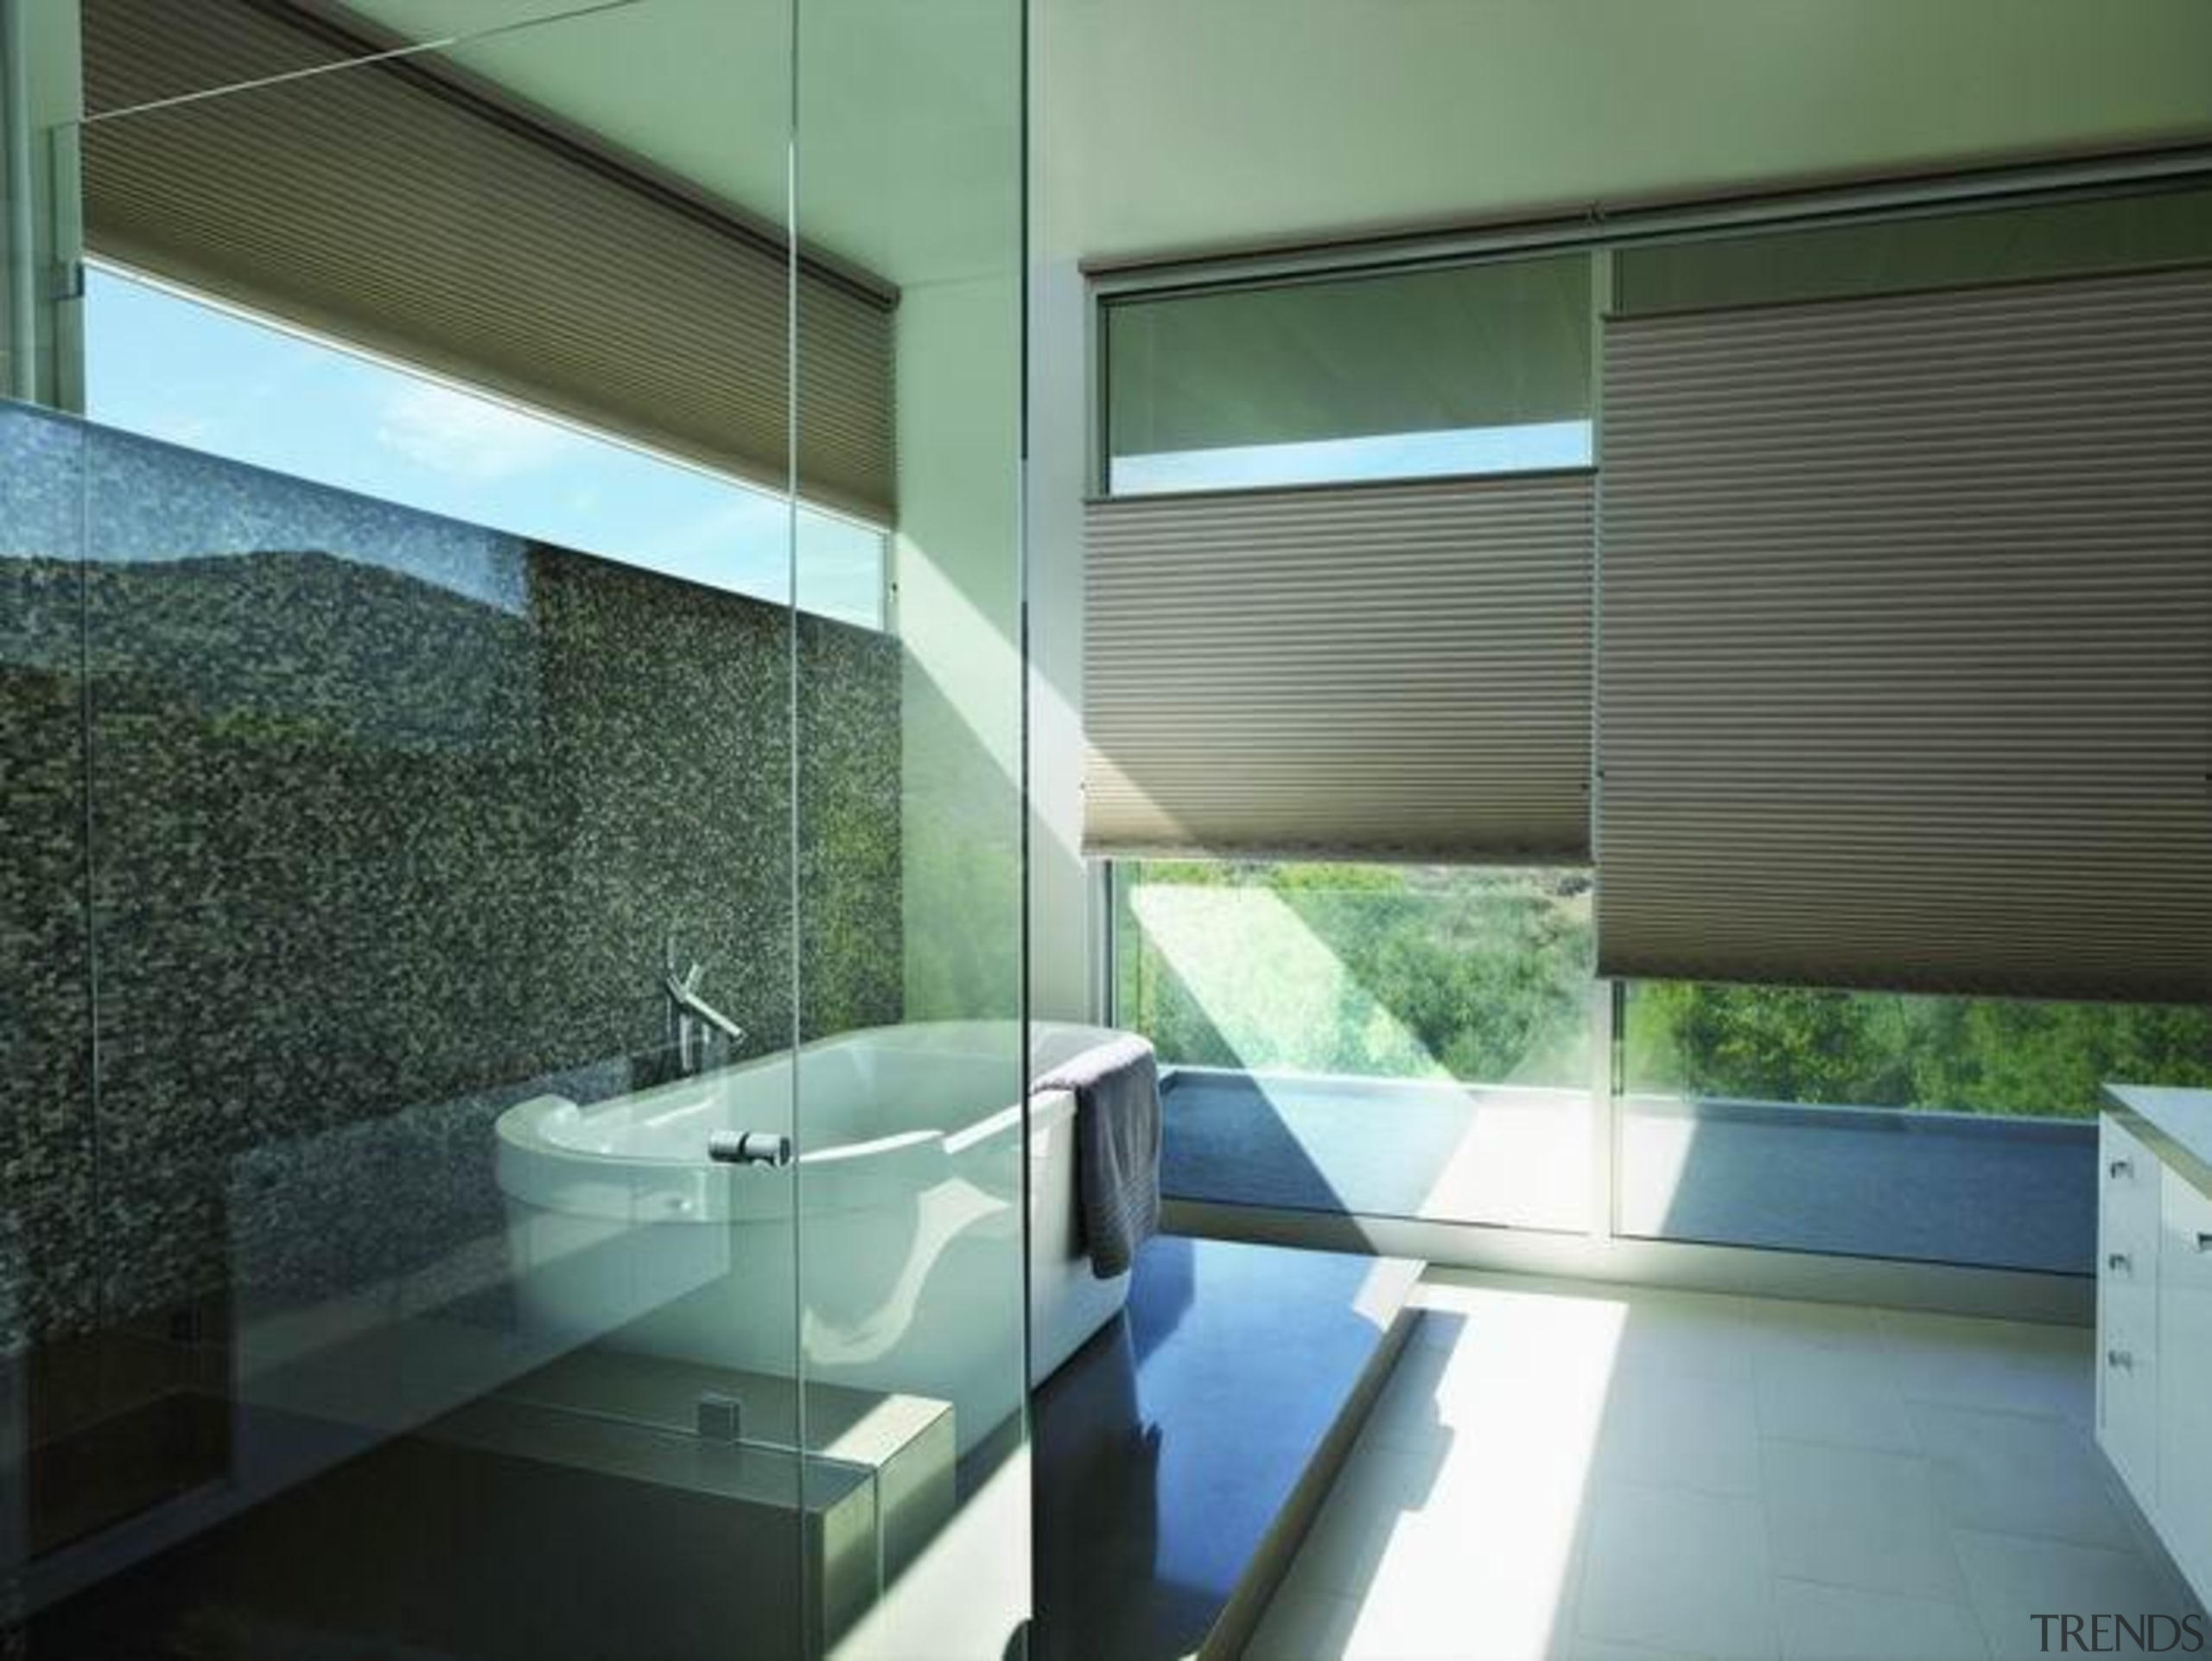 luxaflex duette shades - luxaflex duette shades - architecture, bathroom, daylighting, glass, home, house, interior design, property, real estate, shade, window, window blind, window covering, window treatment, green, black